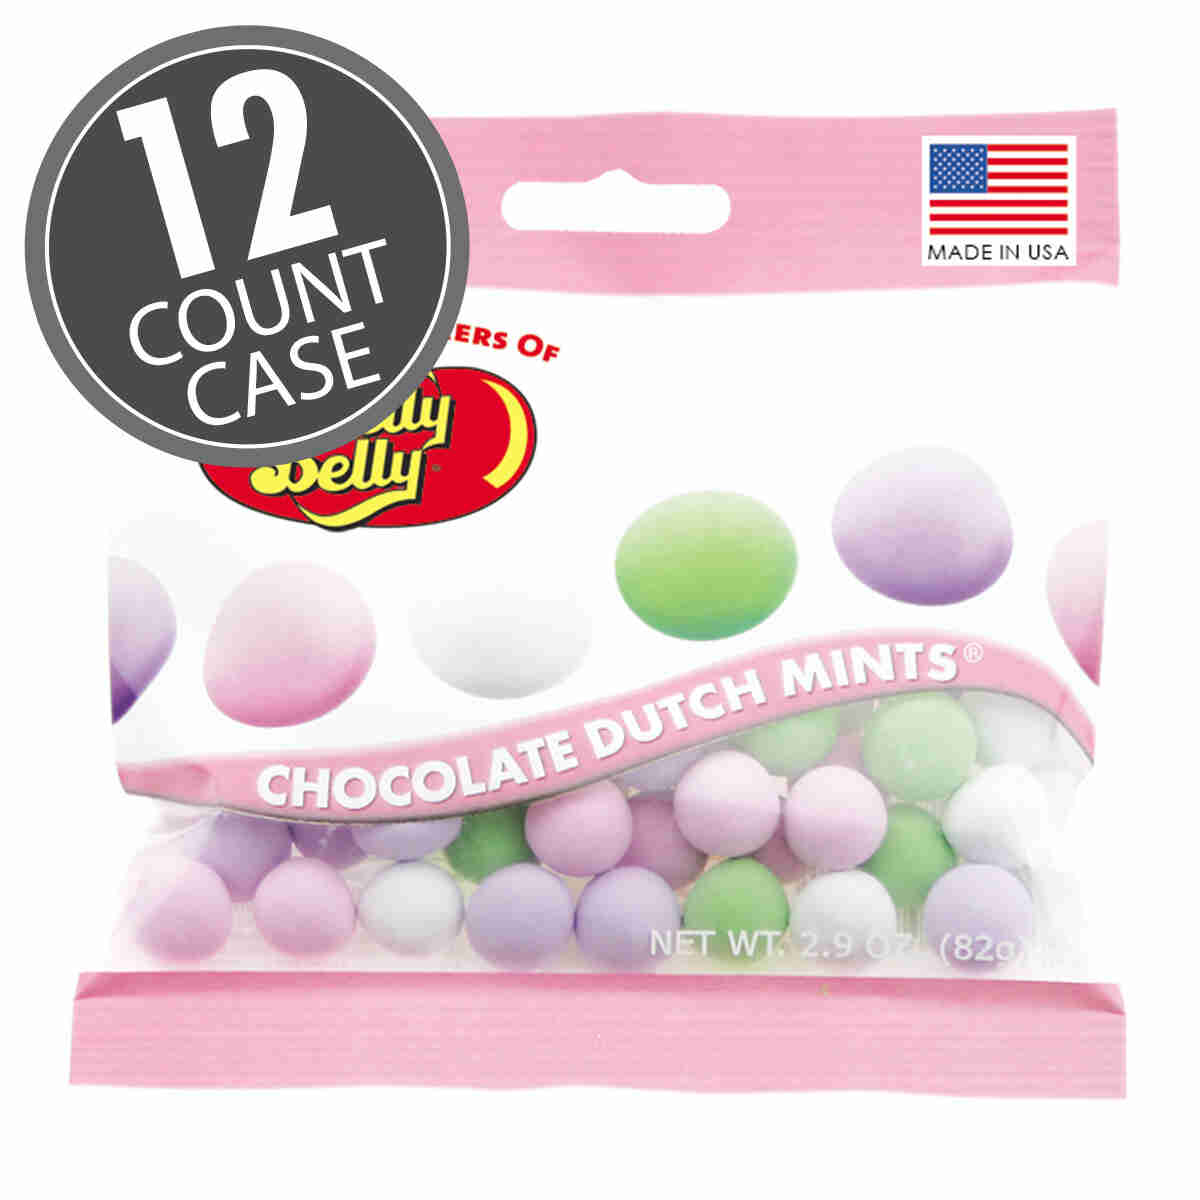 Chocolate Dutch Mints® - Assorted - 2.9 oz Bag - 12 Count Case